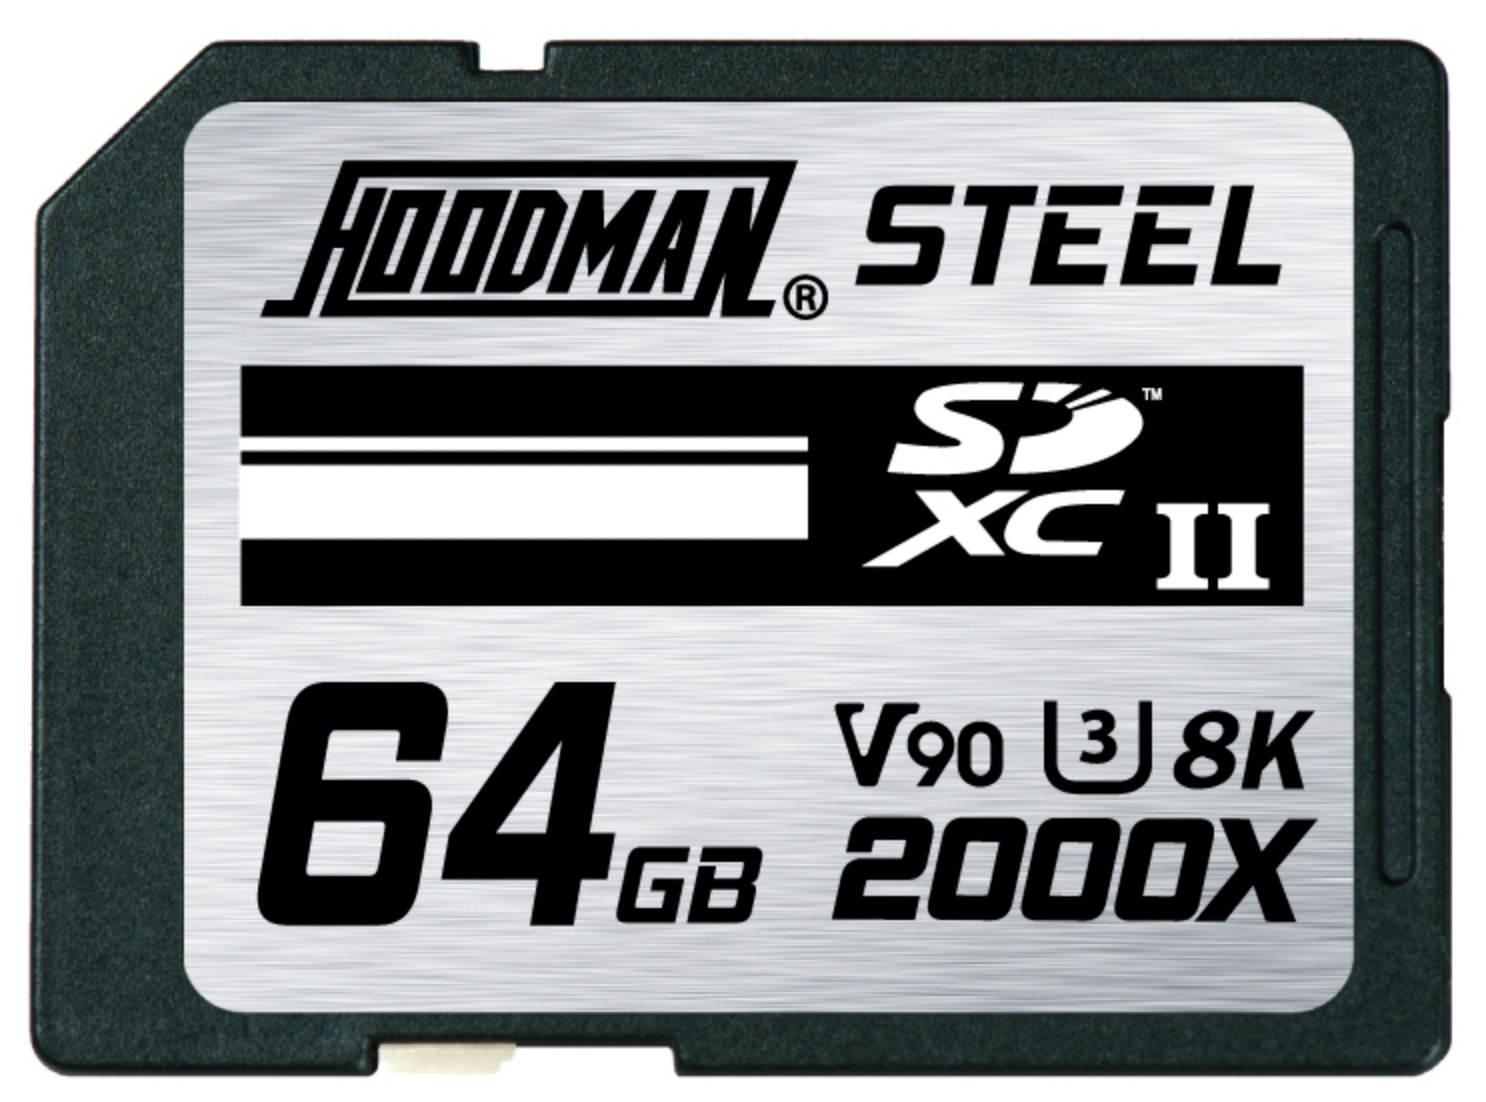 Hoodman Steel SDXC UHS-II 64GB Class 10, U3, 2000x Ruggedized Memory Card